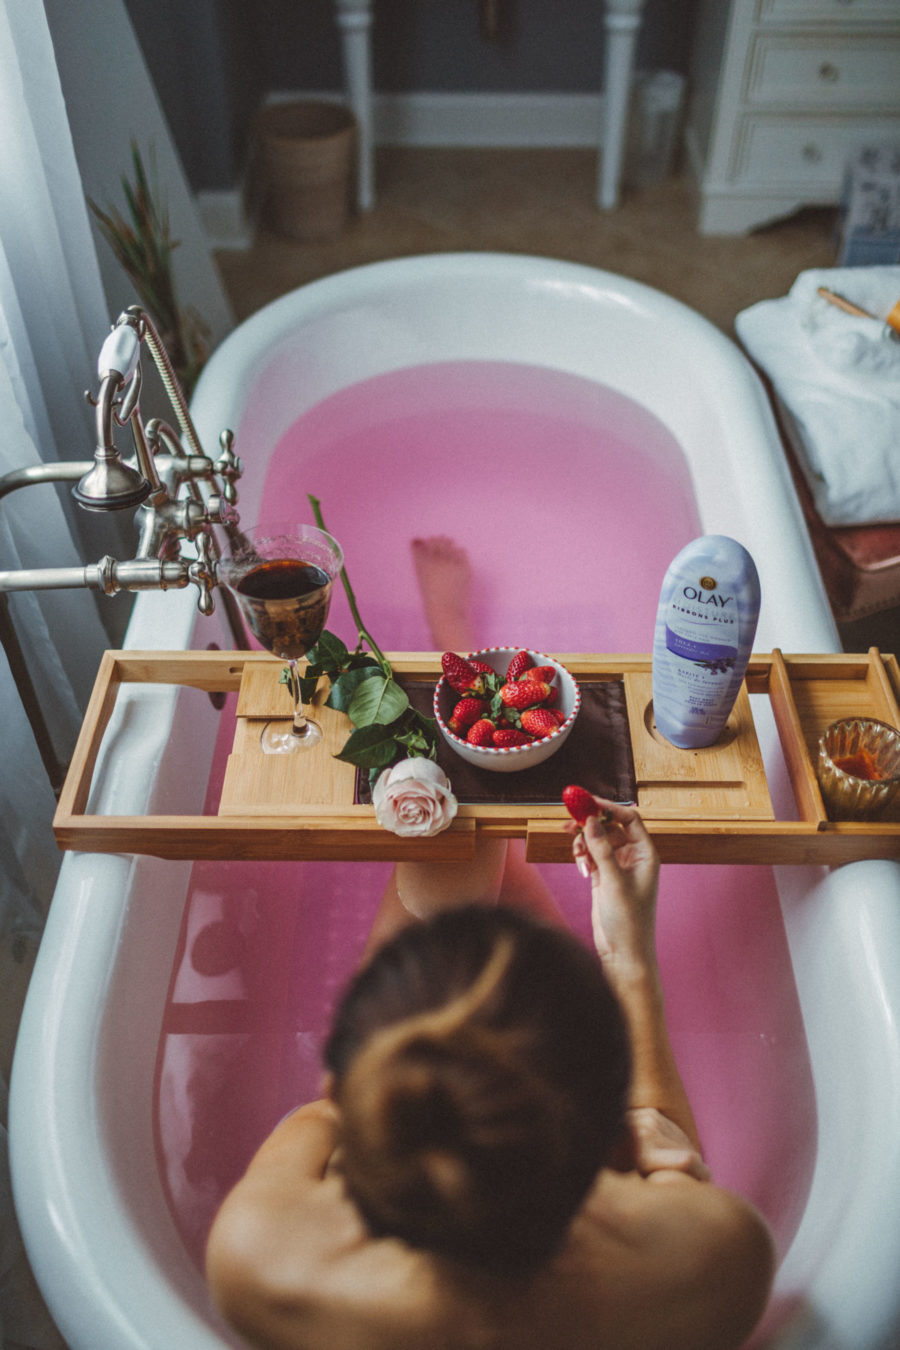 fashion blogger jessica wang shares her self-care guide at home in a pink bath // Jessica Wang -Notjessfashion.com